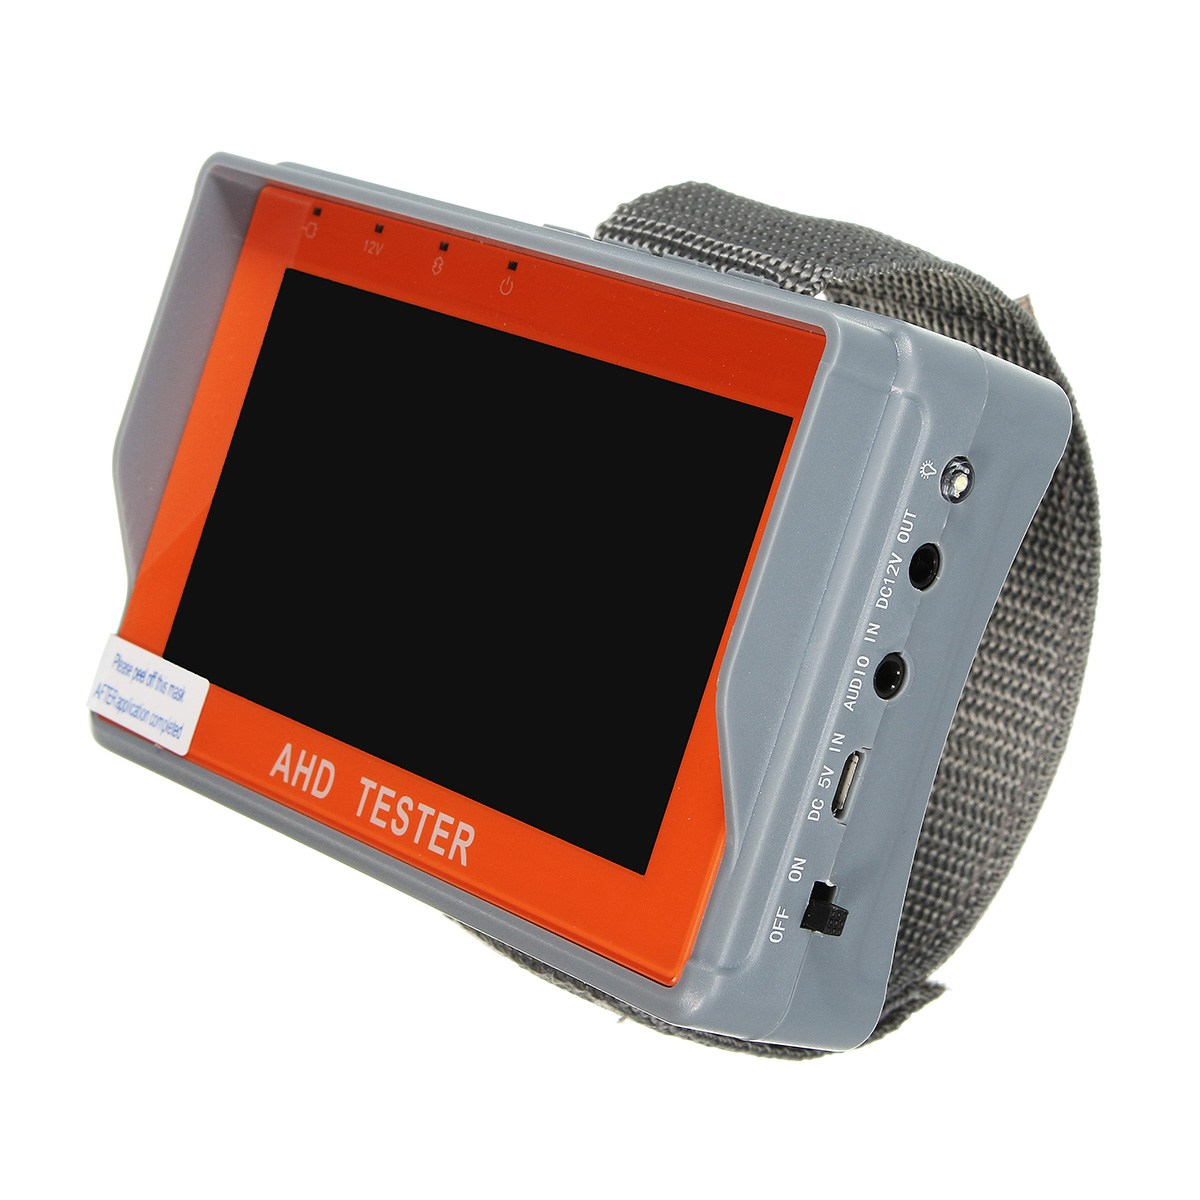 Safurance 4.3 inch TFT LCD HD CCTV AHD Tester Monitor Analog Camera UTP Cable PTZ 12V Home Security dhl fedex frees shiping new product pro security ahd hybrid cctv tester 3 5 tft cctv camera video ptz tester brand new